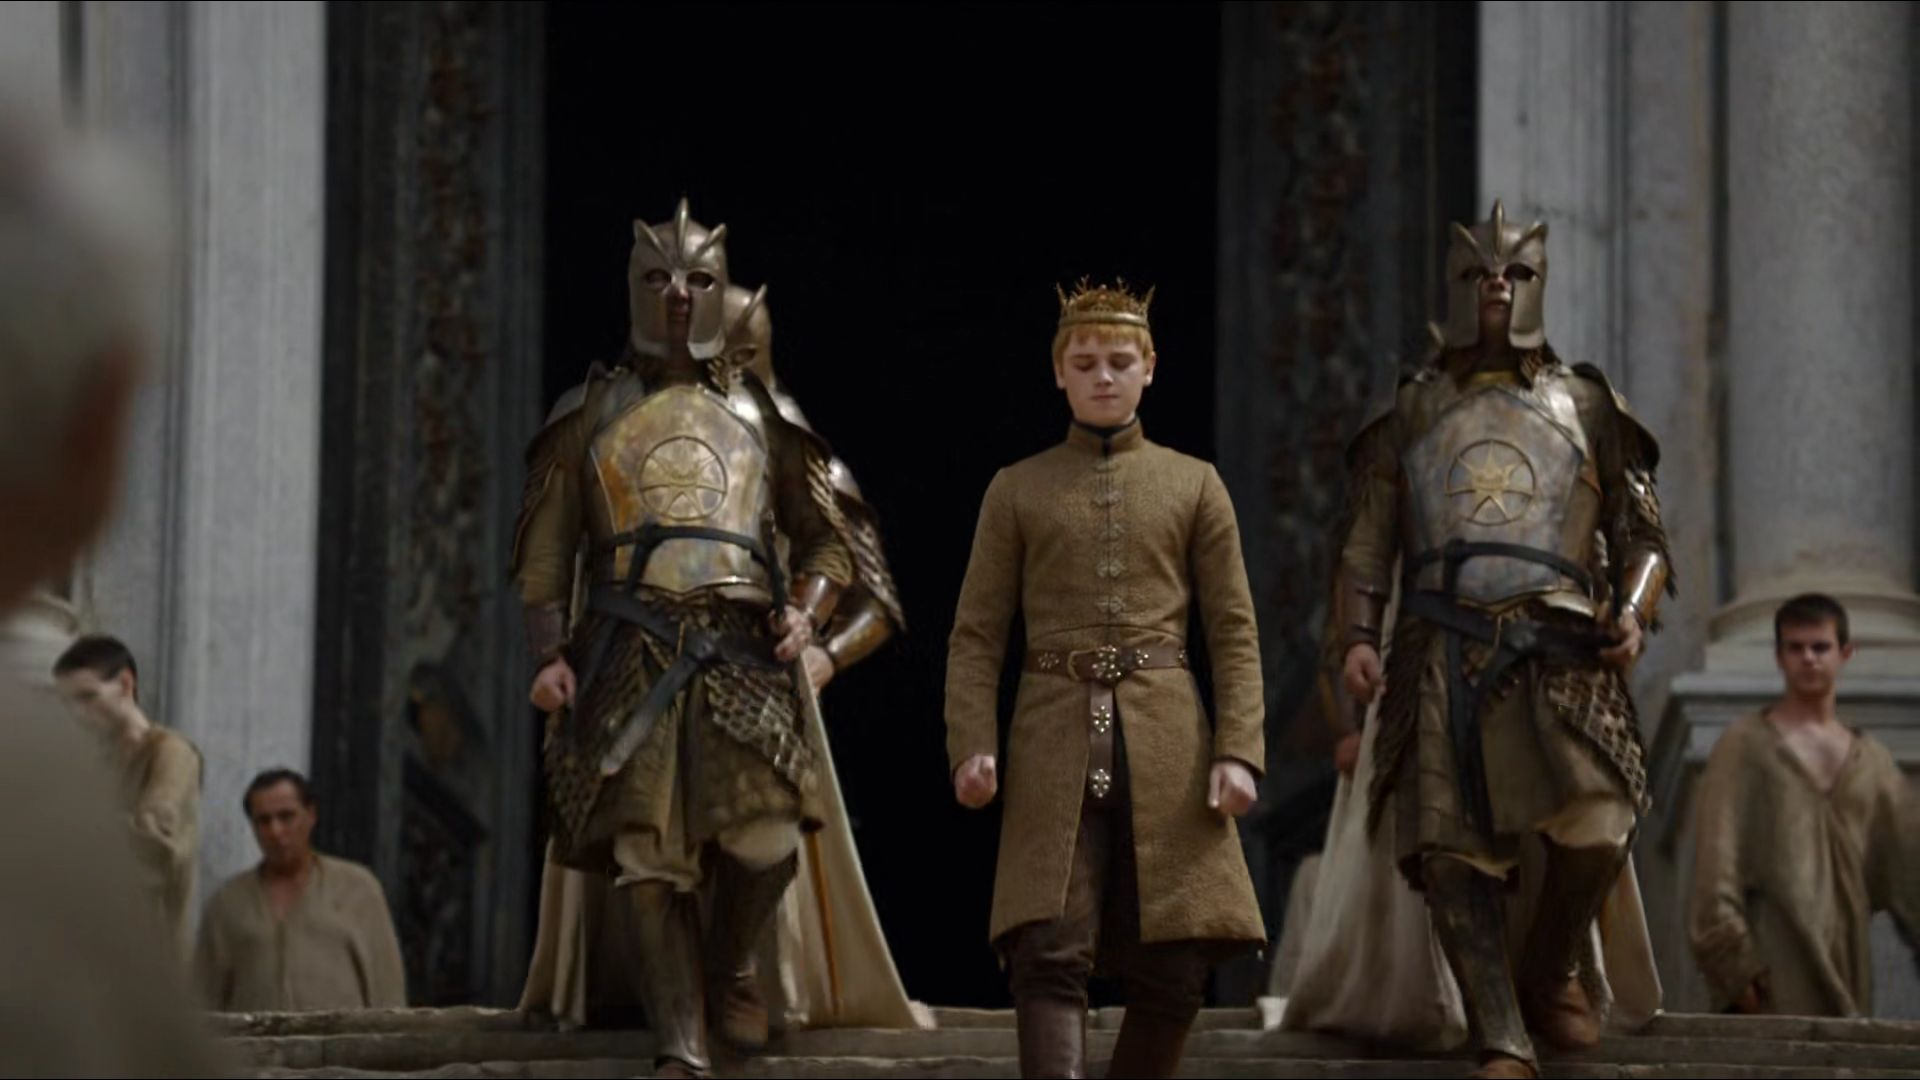 The Top 20 Outfits from Game of Thrones Season 6 - Page 13 Game Of Thrones Armor on walking dead armor, last man standing armor, legend of the seeker armor, lord of the rings armor, steven universe armor,